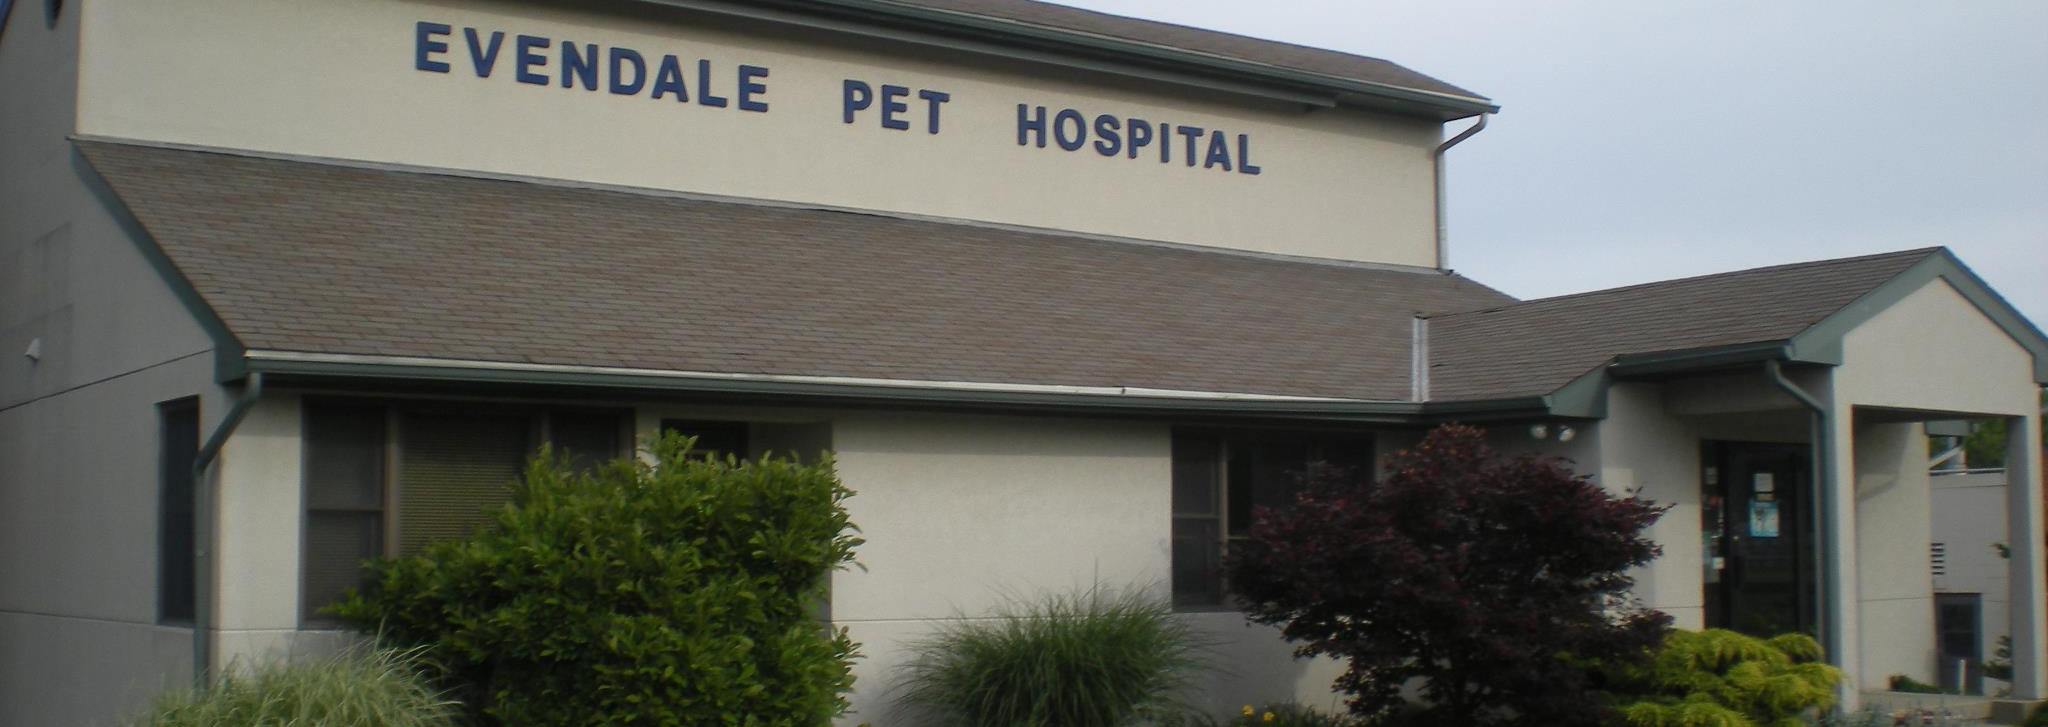 Front view of Evendale Pet Hospital